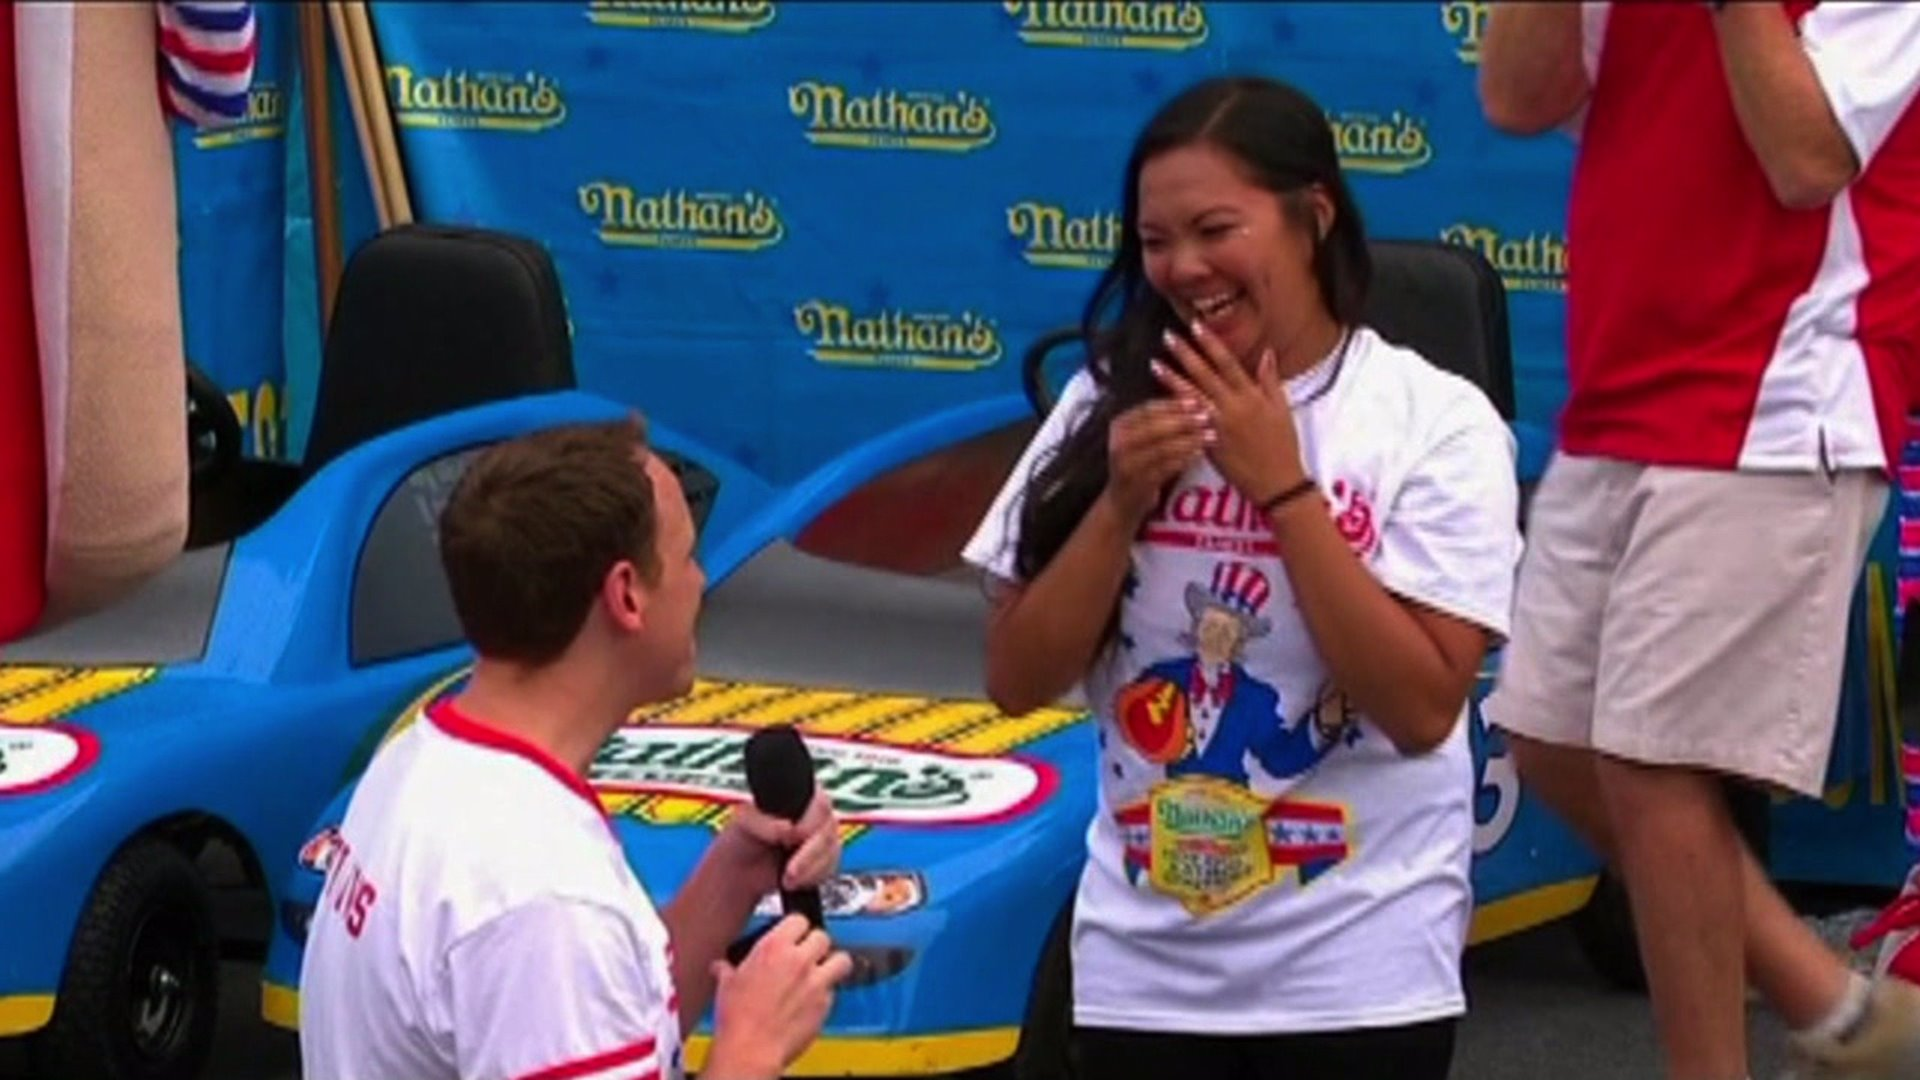 Joey Chestnut proposes to his girlfriend before winning hot dog eating contest. Photo: ESPN